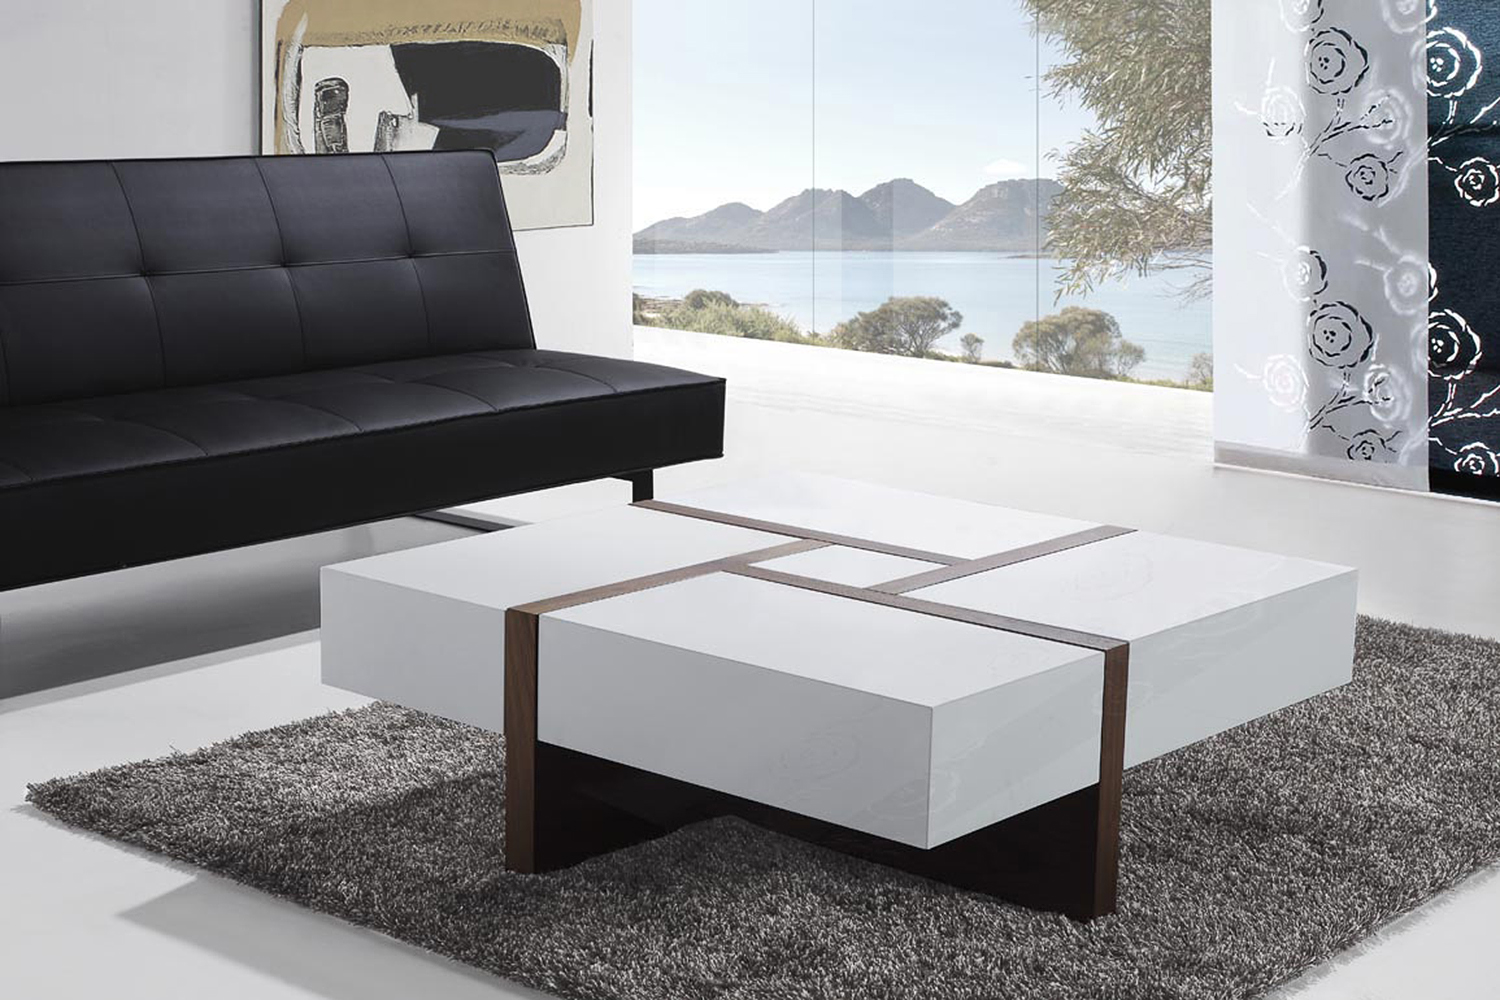 Sofa sectional modular beige fabric living room l shape left oslo ebay Sofa quadratisch